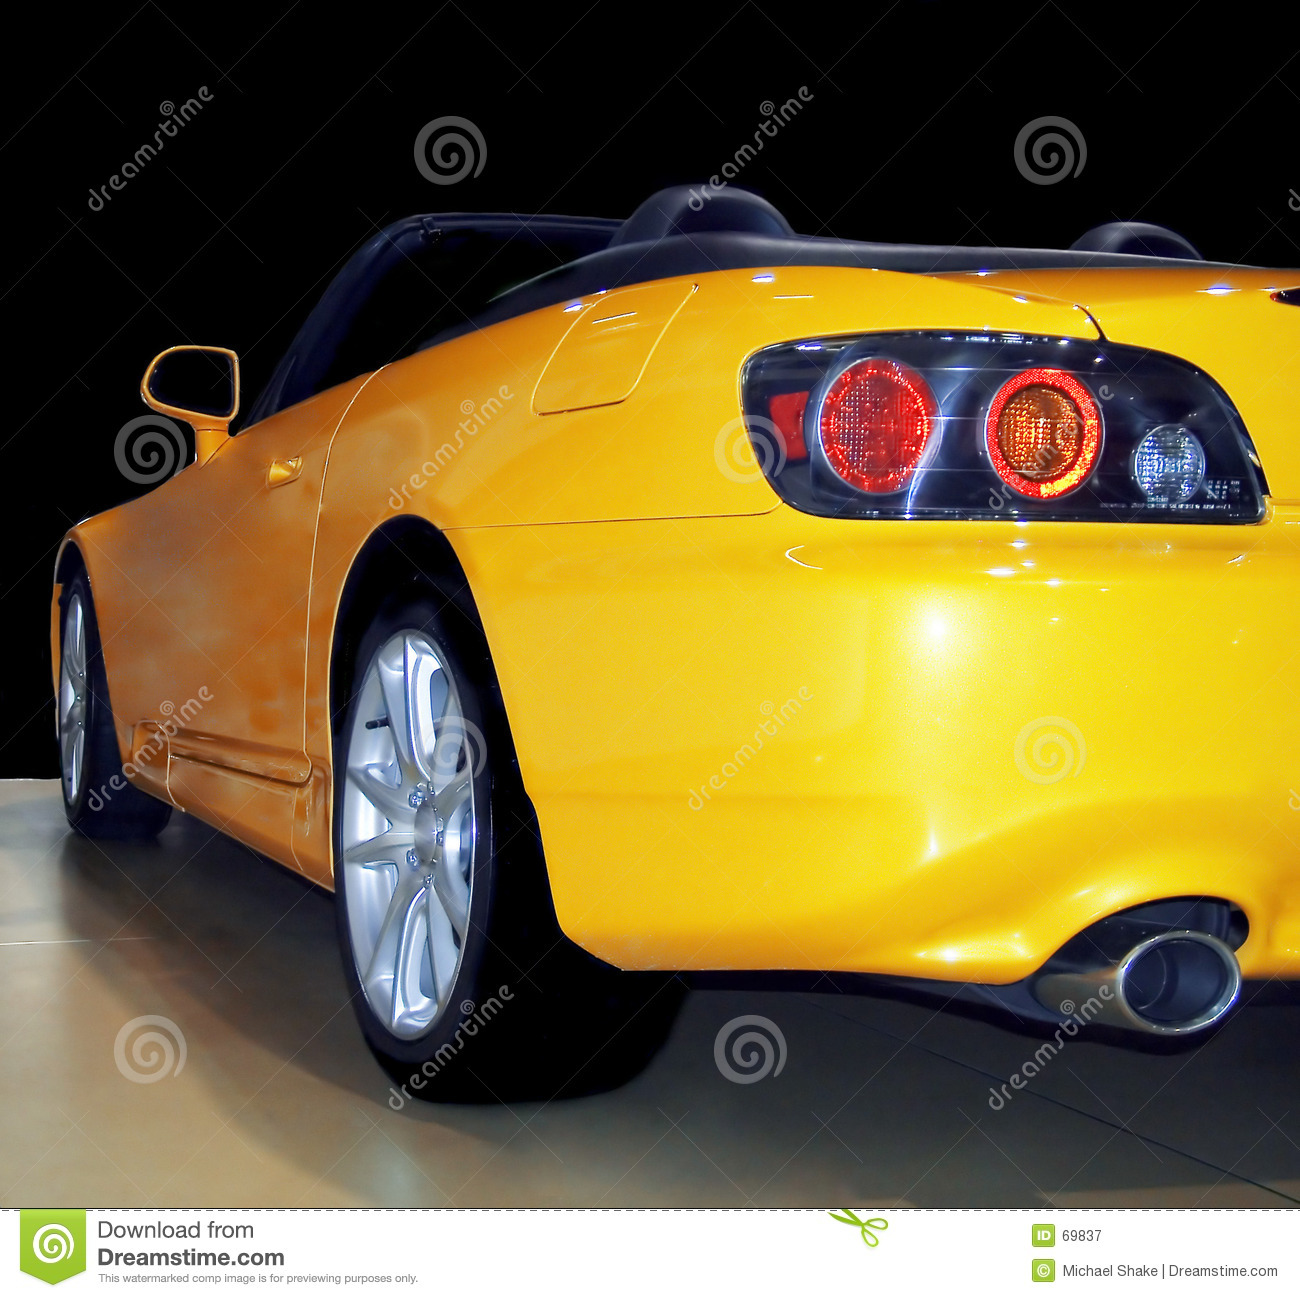 Sportscar yellow